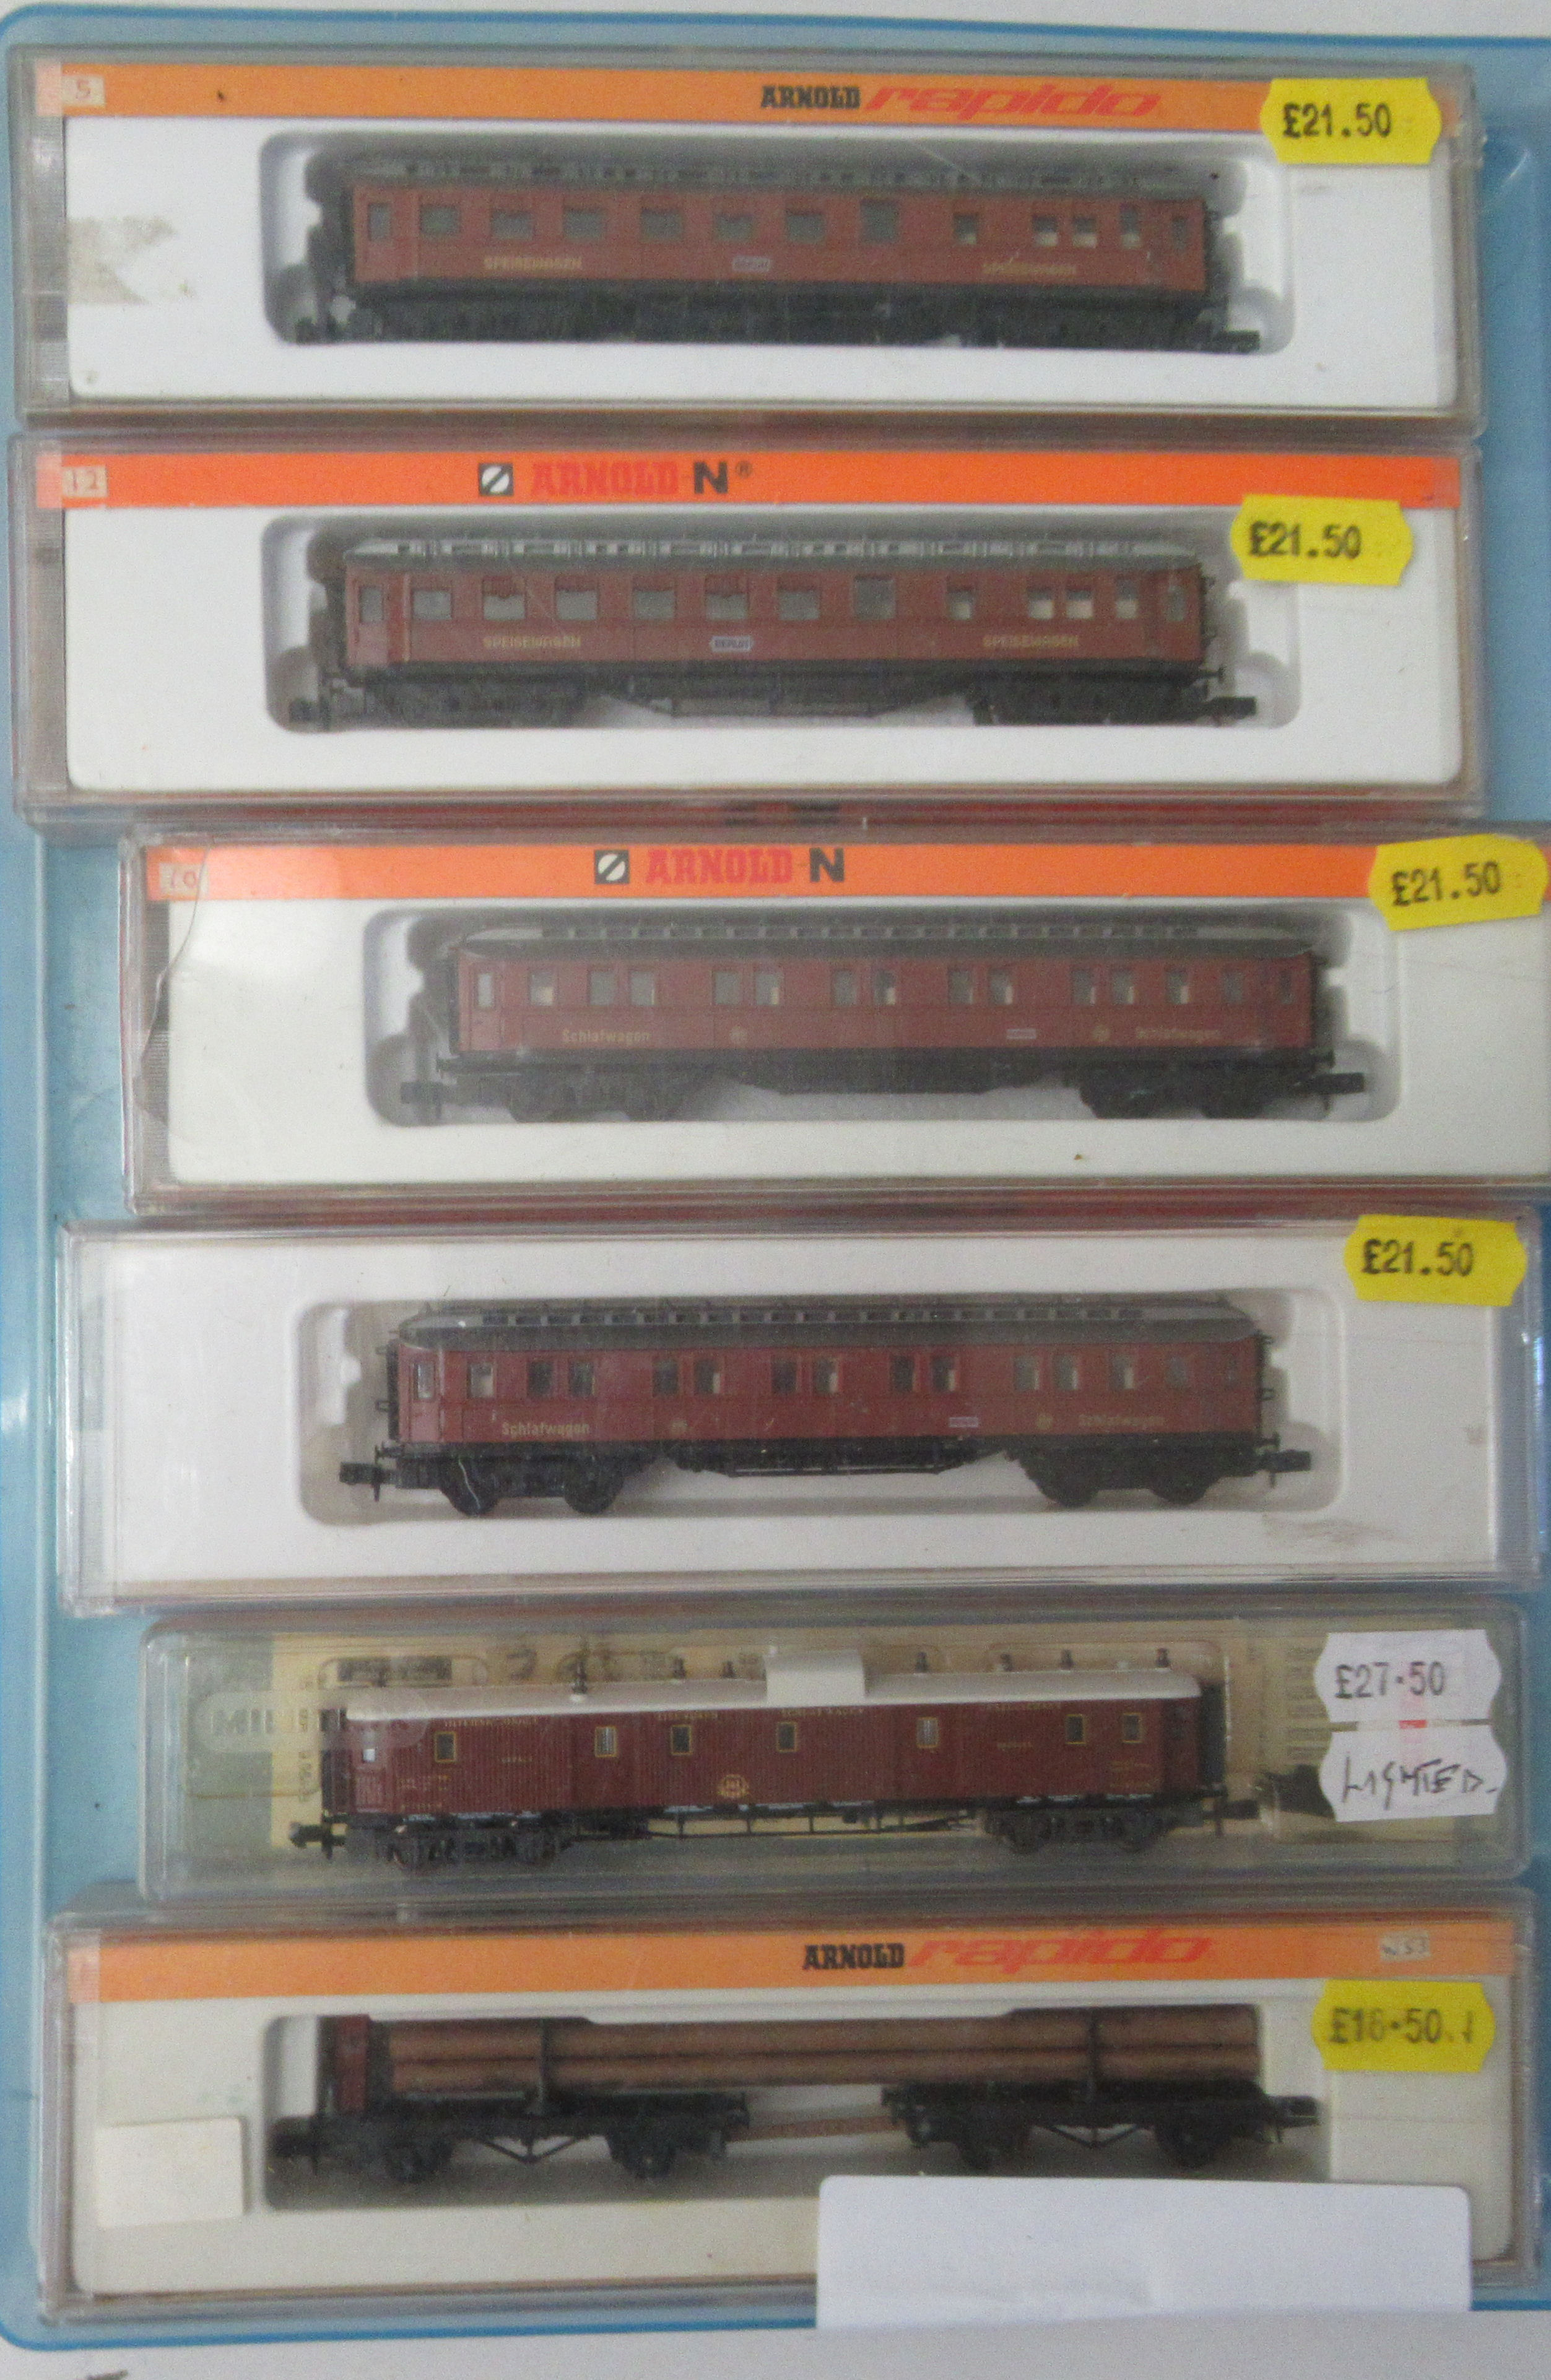 N gauge model railway accessories: to include four Arnold passenger coaches boxed